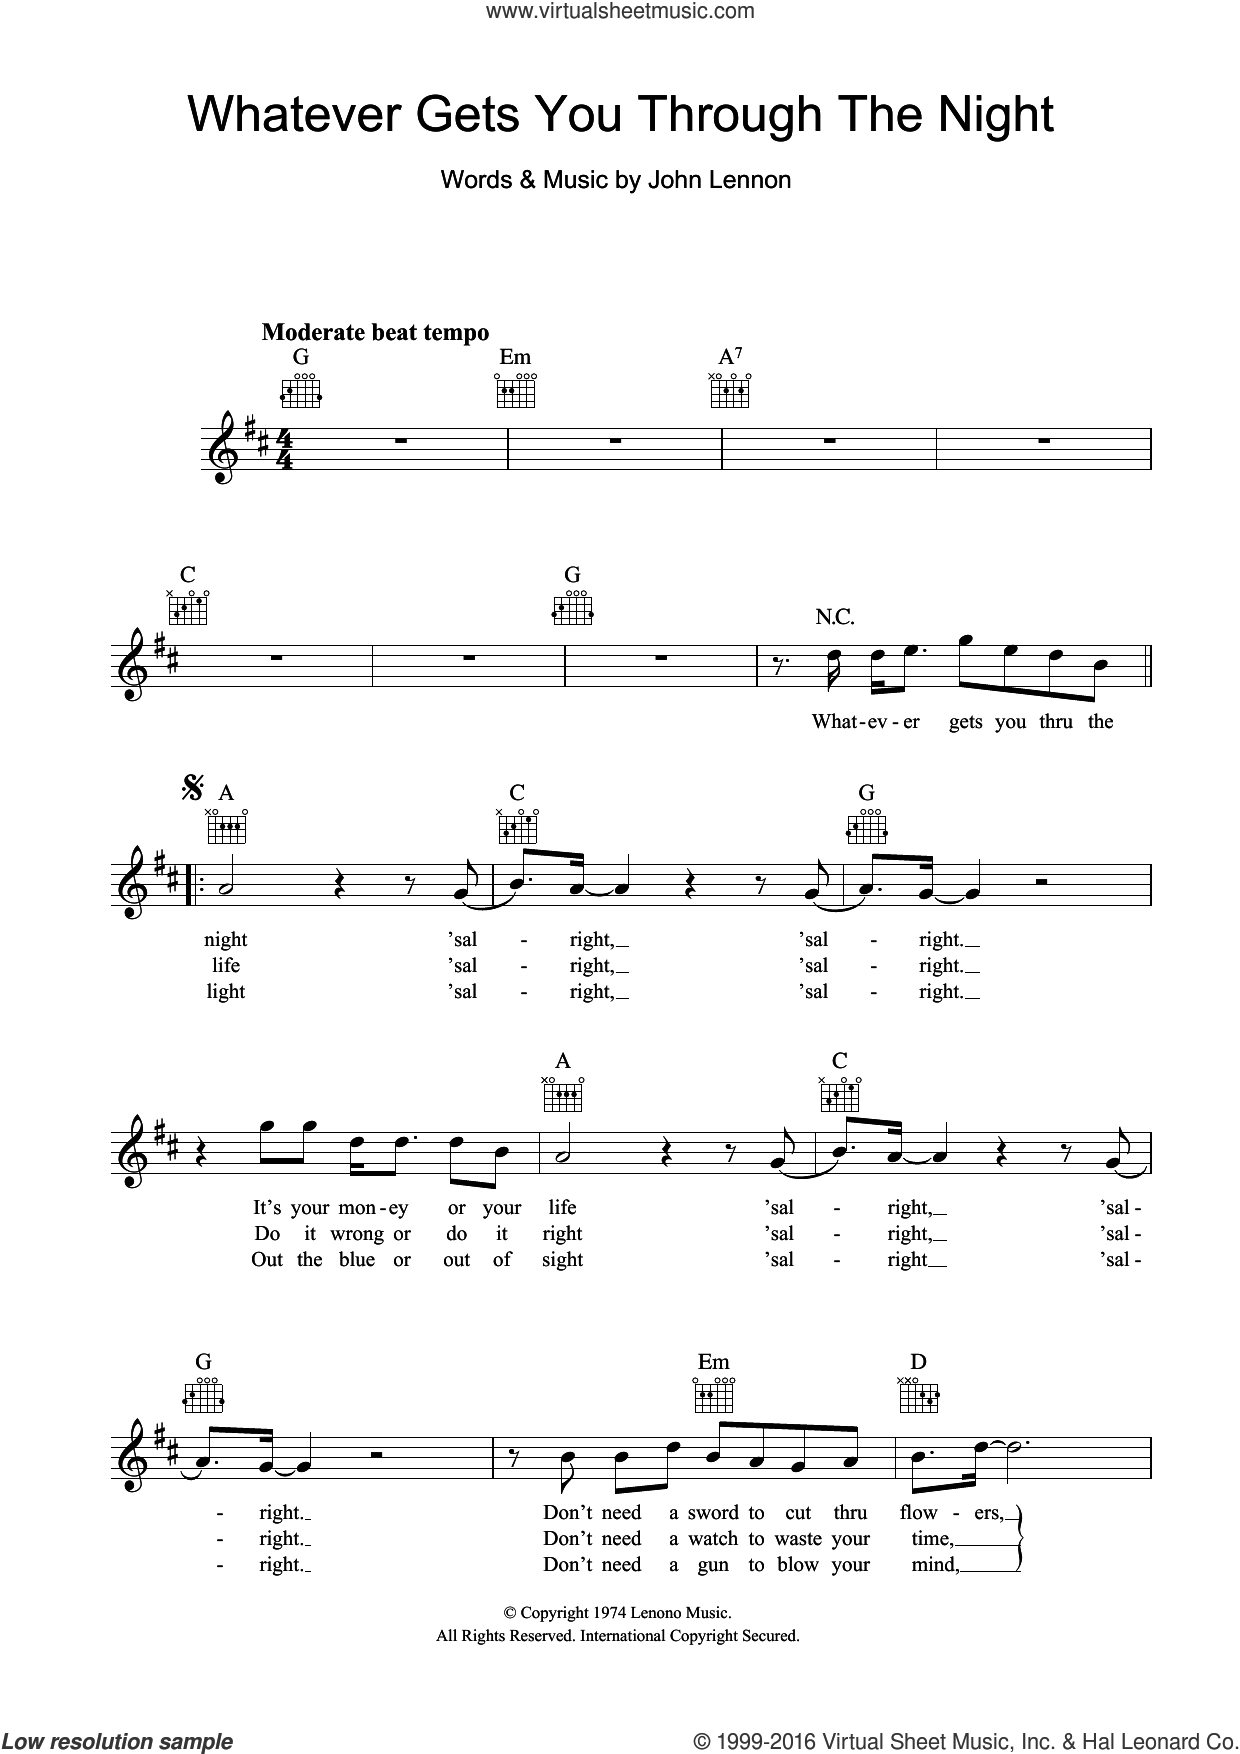 Whatever Gets You Through The Night sheet music for voice and other instruments (fake book) by John Lennon, intermediate skill level